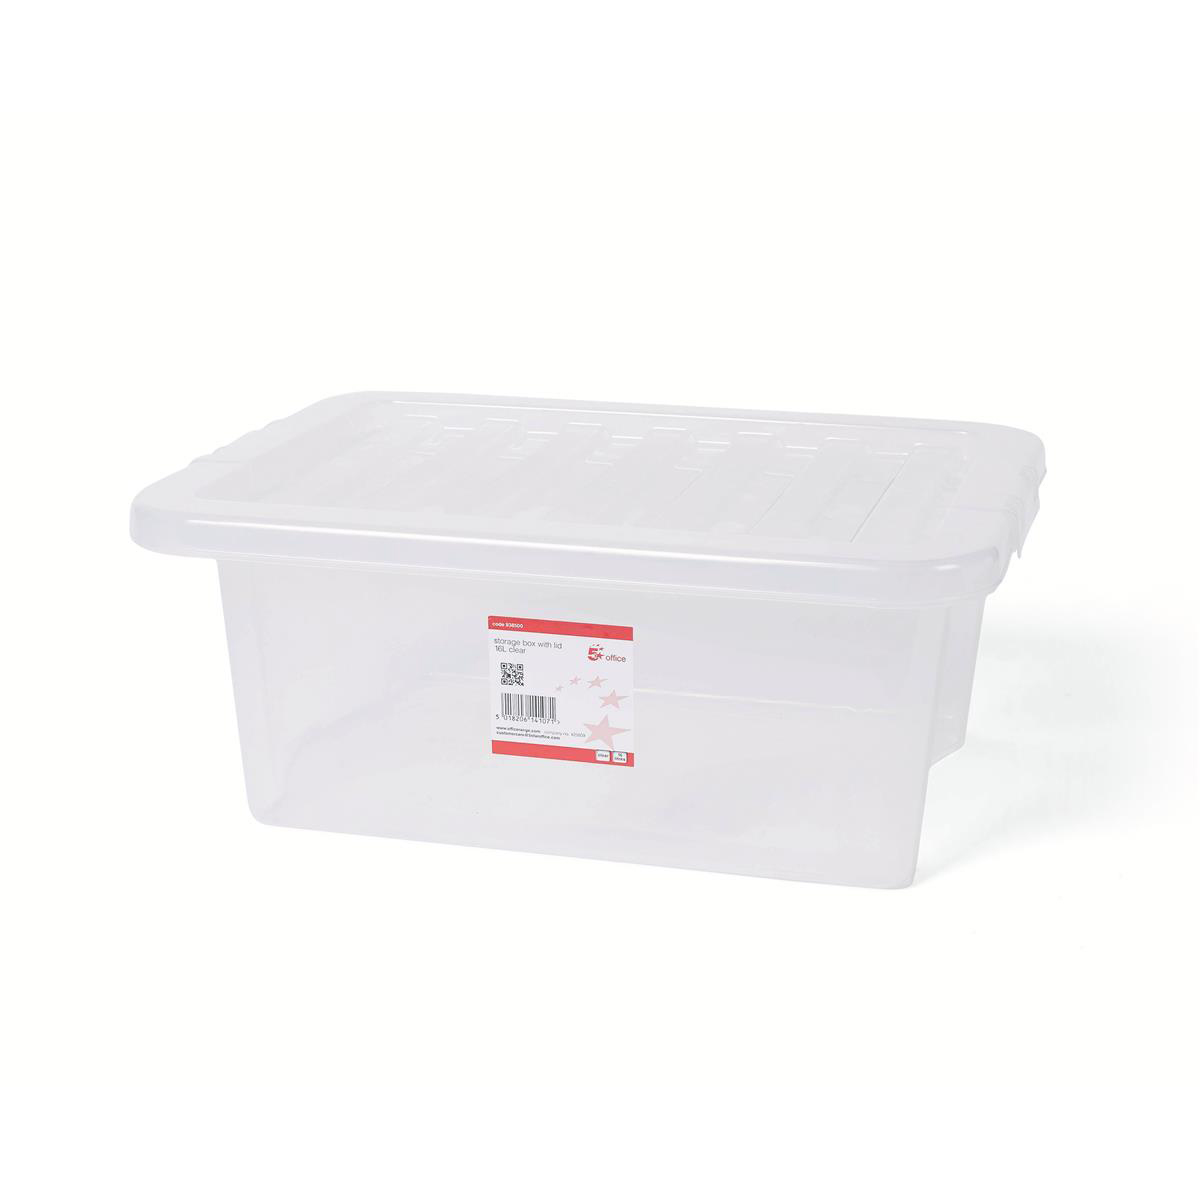 Image for 5 Star Office Storage Box Plastic with Lid Stackable 16 Litre Clear